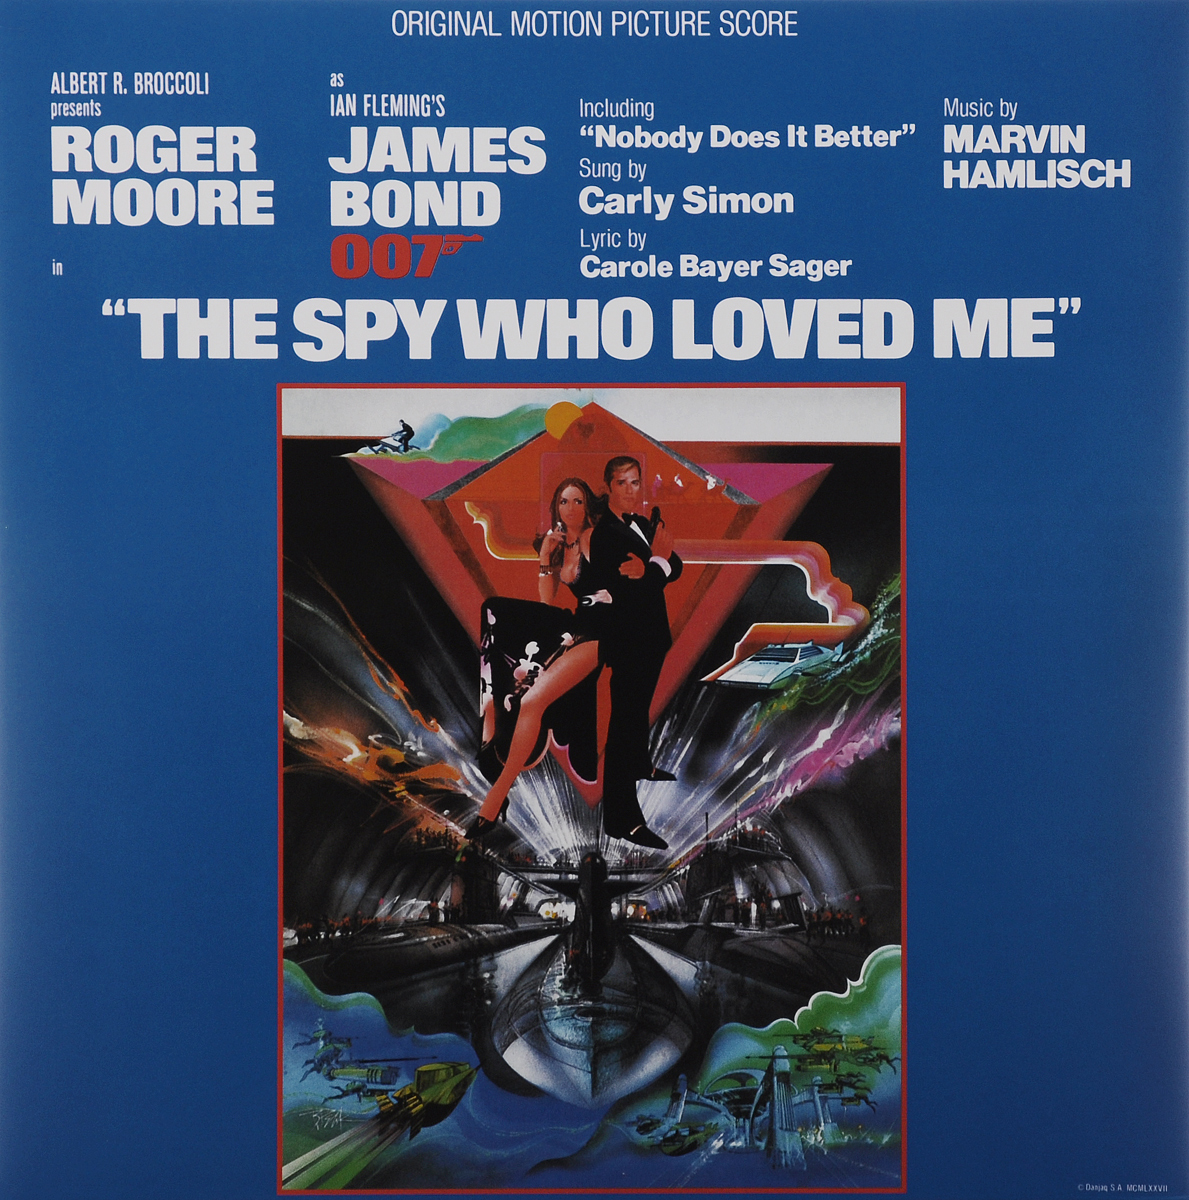 The Spy Who Loved Me. Original Motion Picture Score (LP) 8 mile music from and inspired by the motion picture 2 lp